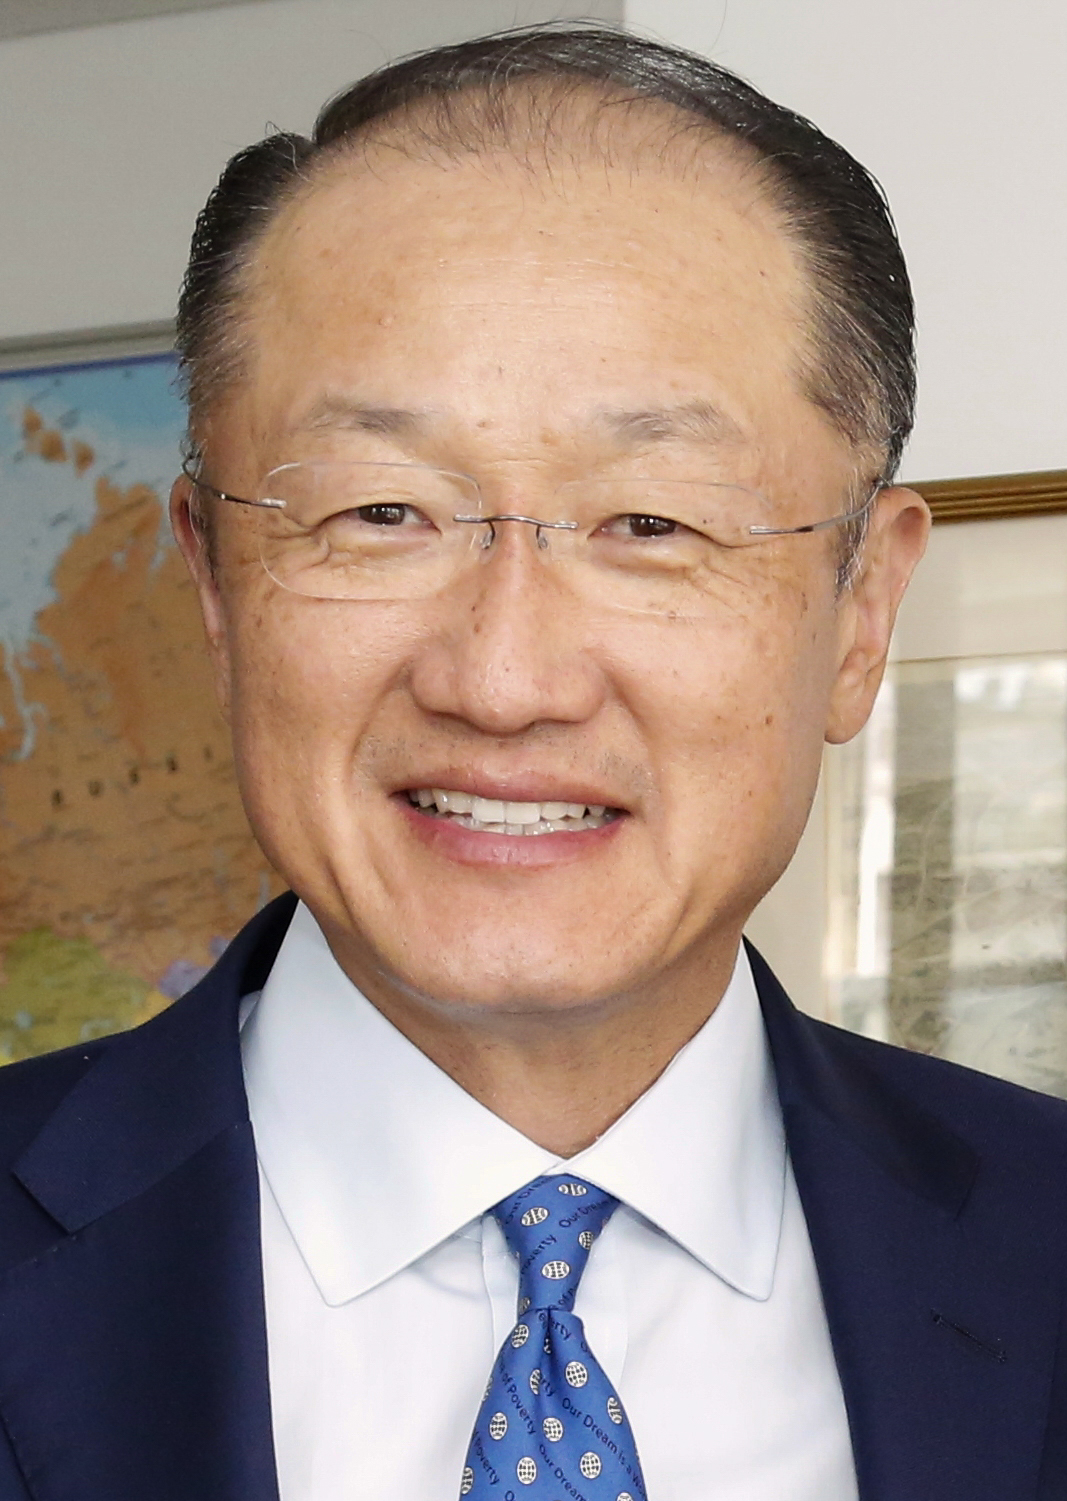 The 58-year old son of father (?) and mother(?) Jim Yong Kim in 2018 photo. Jim Yong Kim earned a  million dollar salary - leaving the net worth at  million in 2018